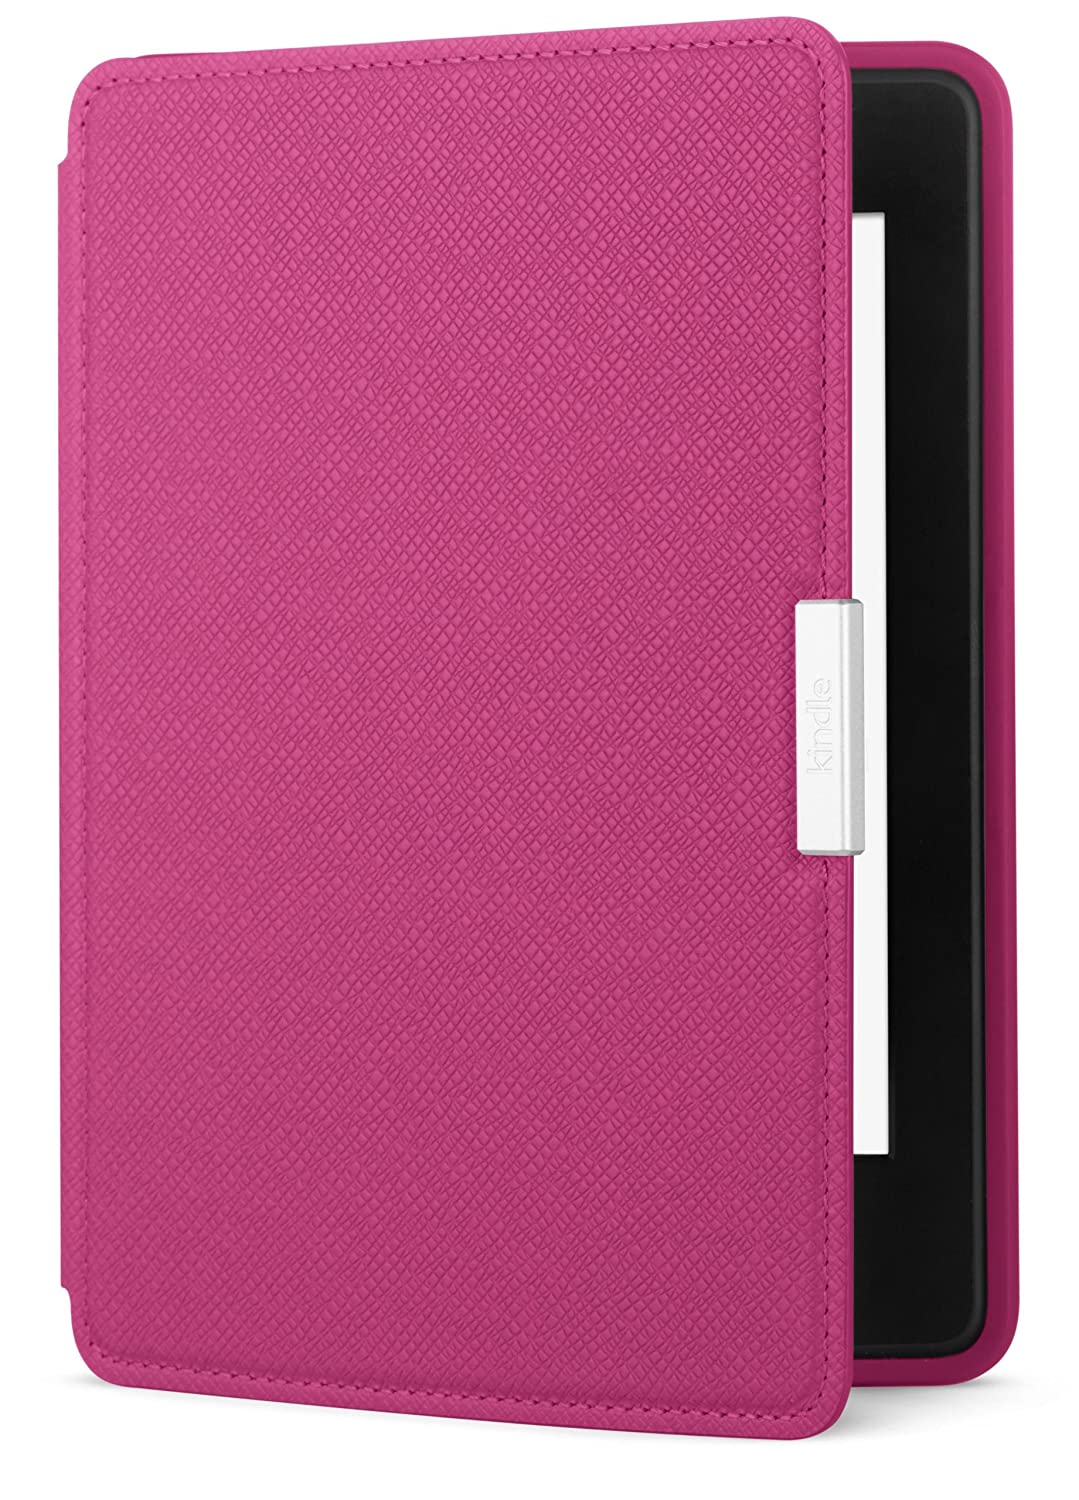 Amazon Kindle Paperwhite Case - Lightest and Thinnest Protective Genuine Leather Cover with Auto Wake/Sleep for Amazon Kindle Paperwhite, Fuschia